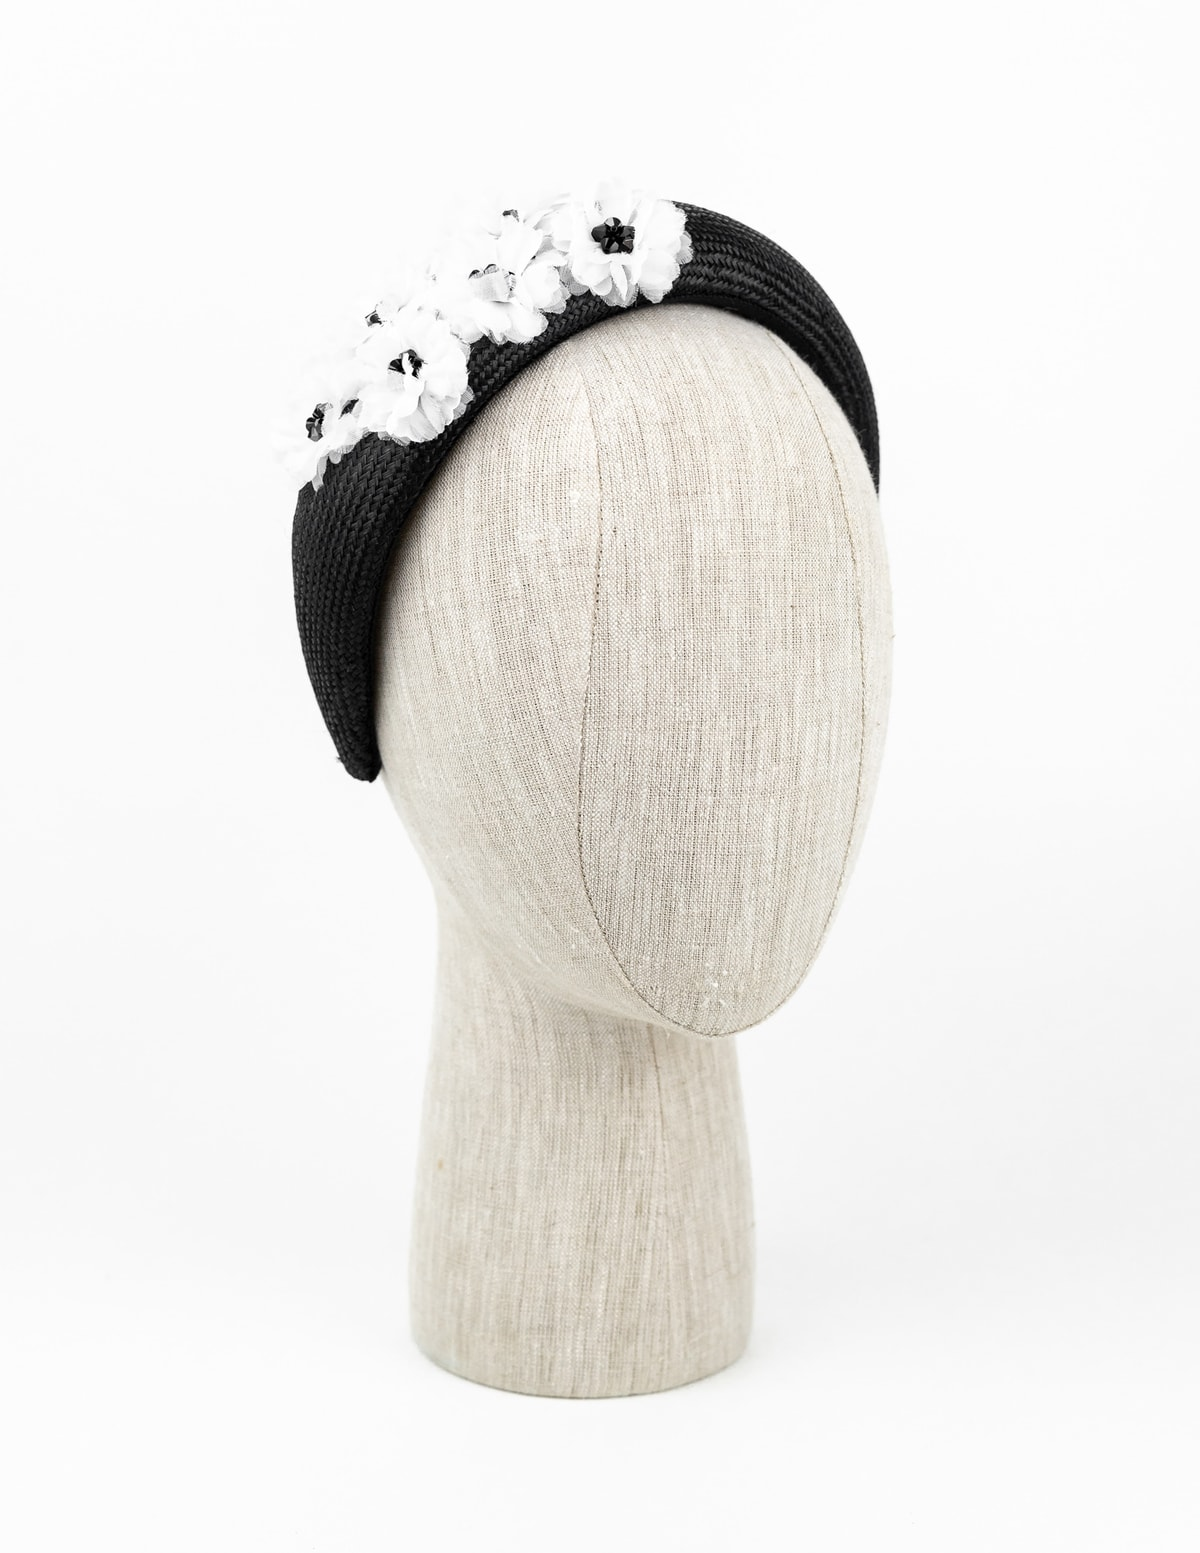 Black straw headpiece with white petal flower and black Swarovski crystals $420